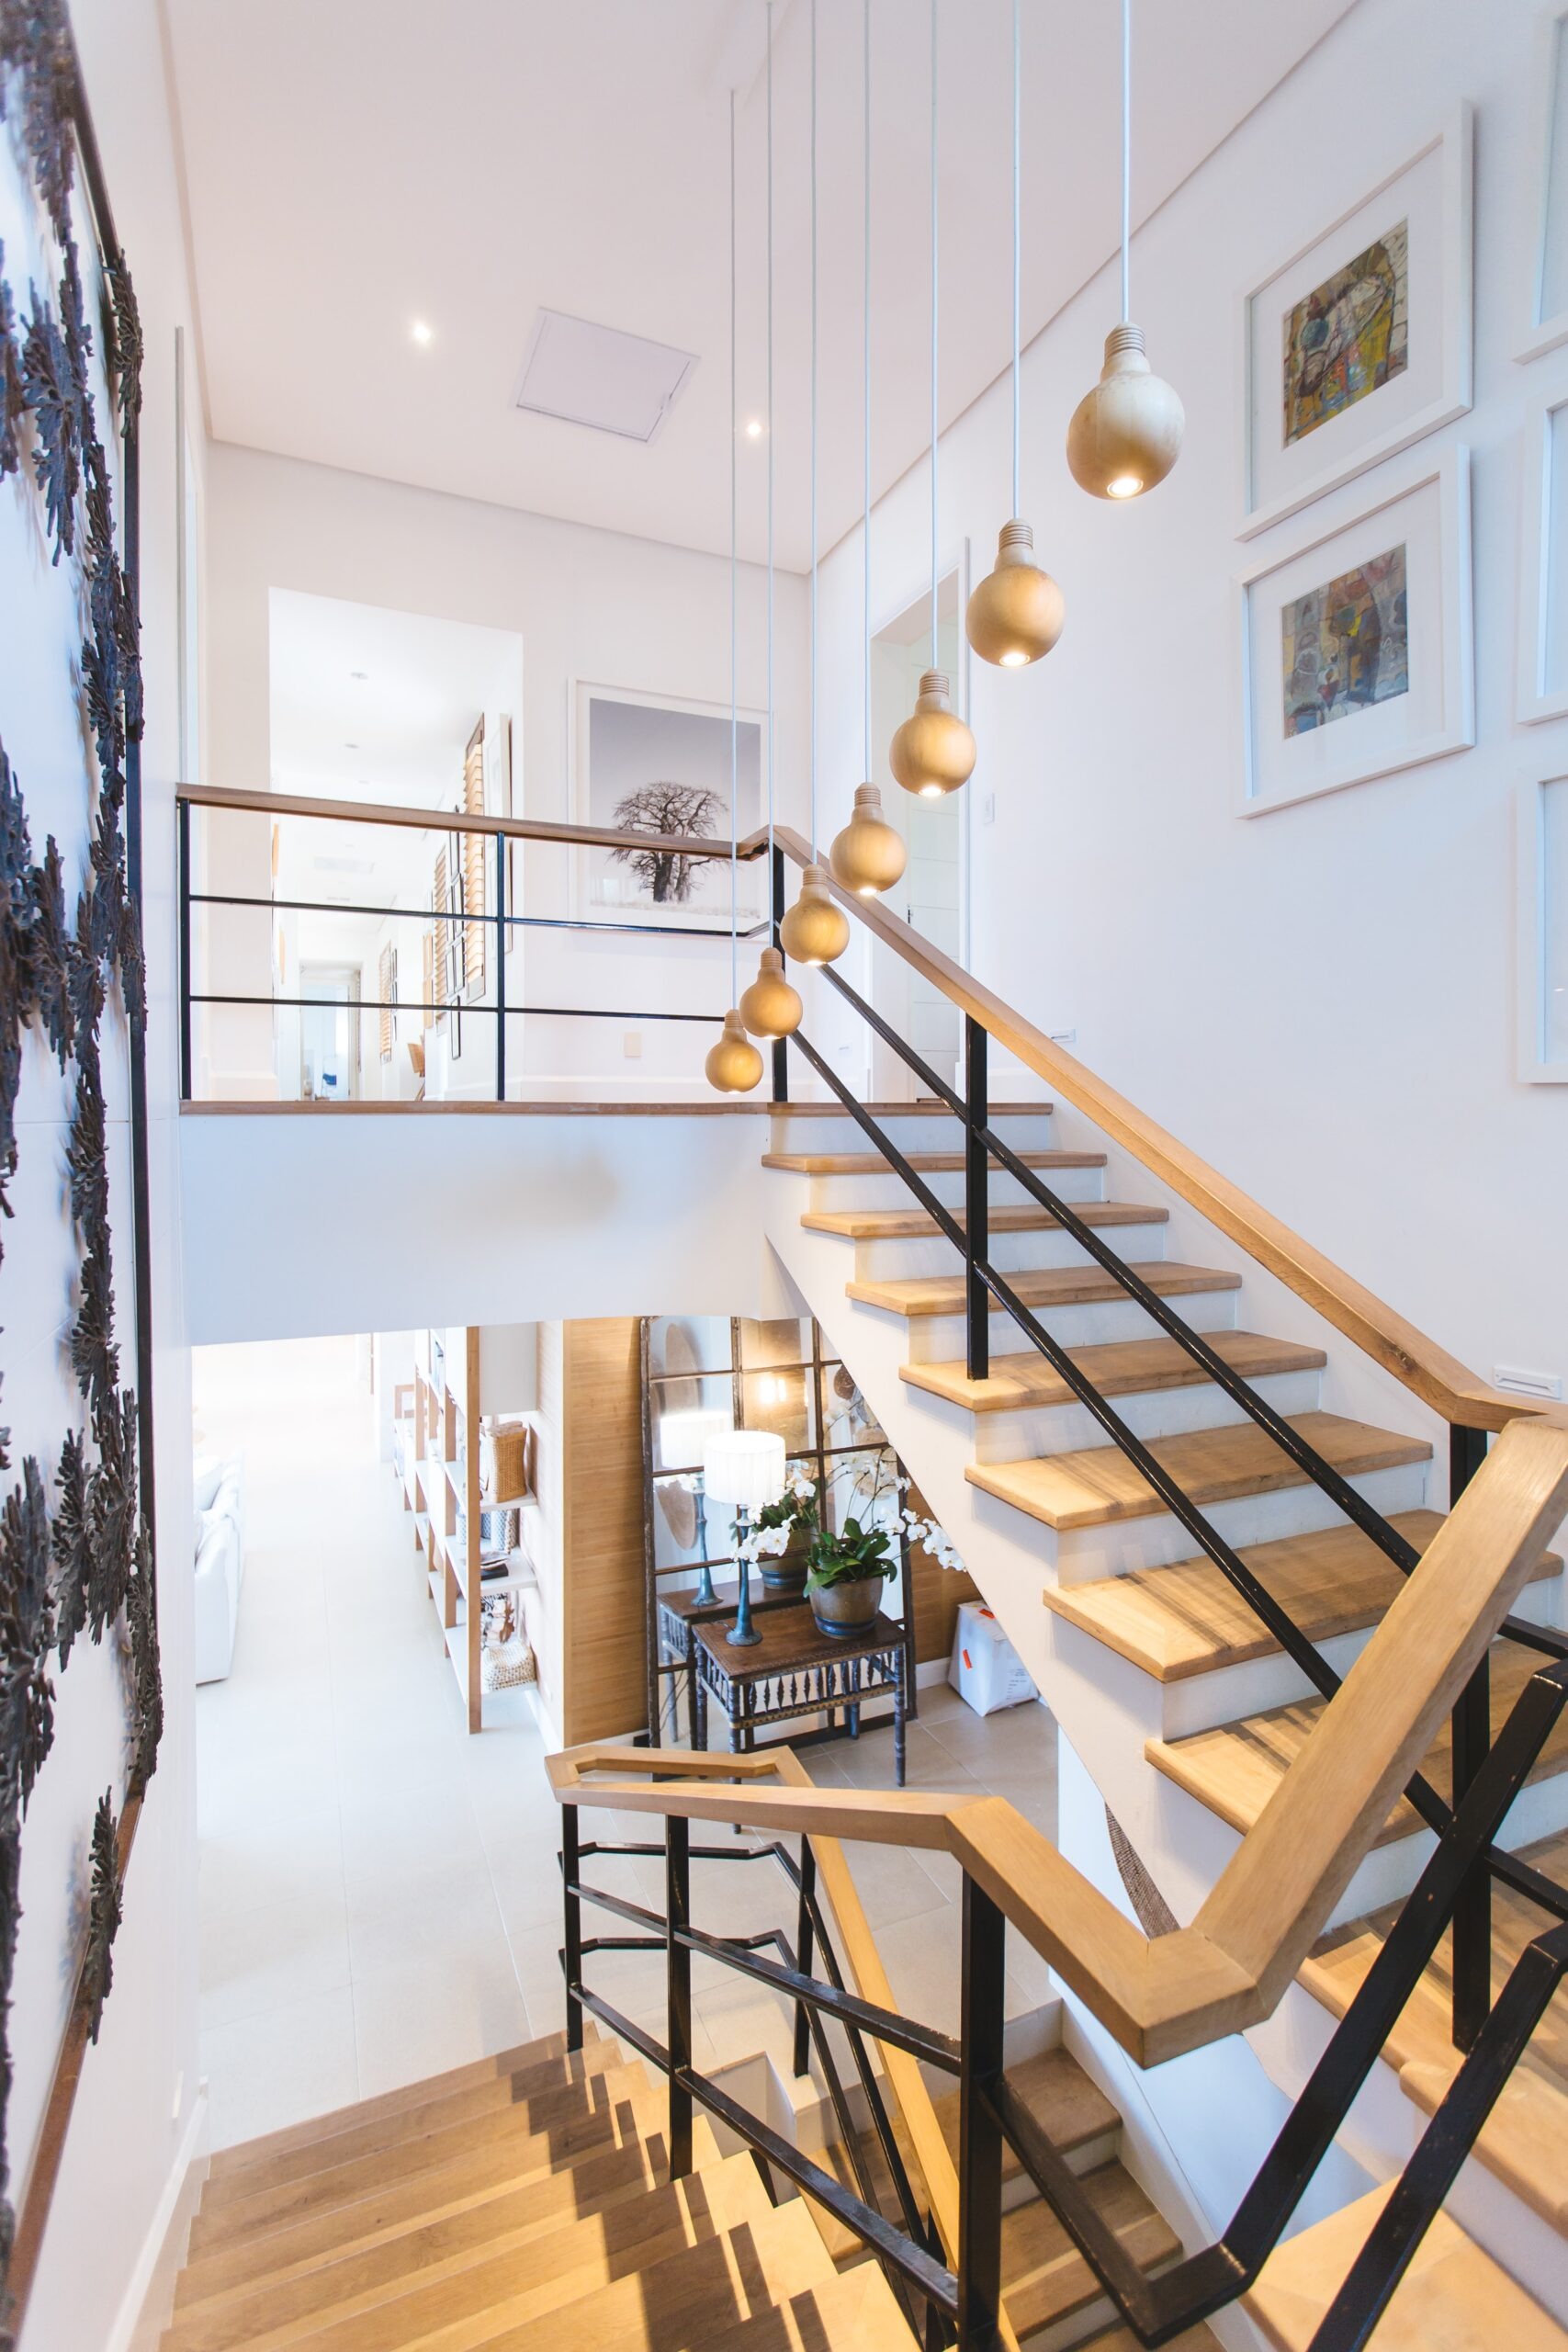 jason-briscoe-Loft view with cascading staircase contemporary home-unsplash